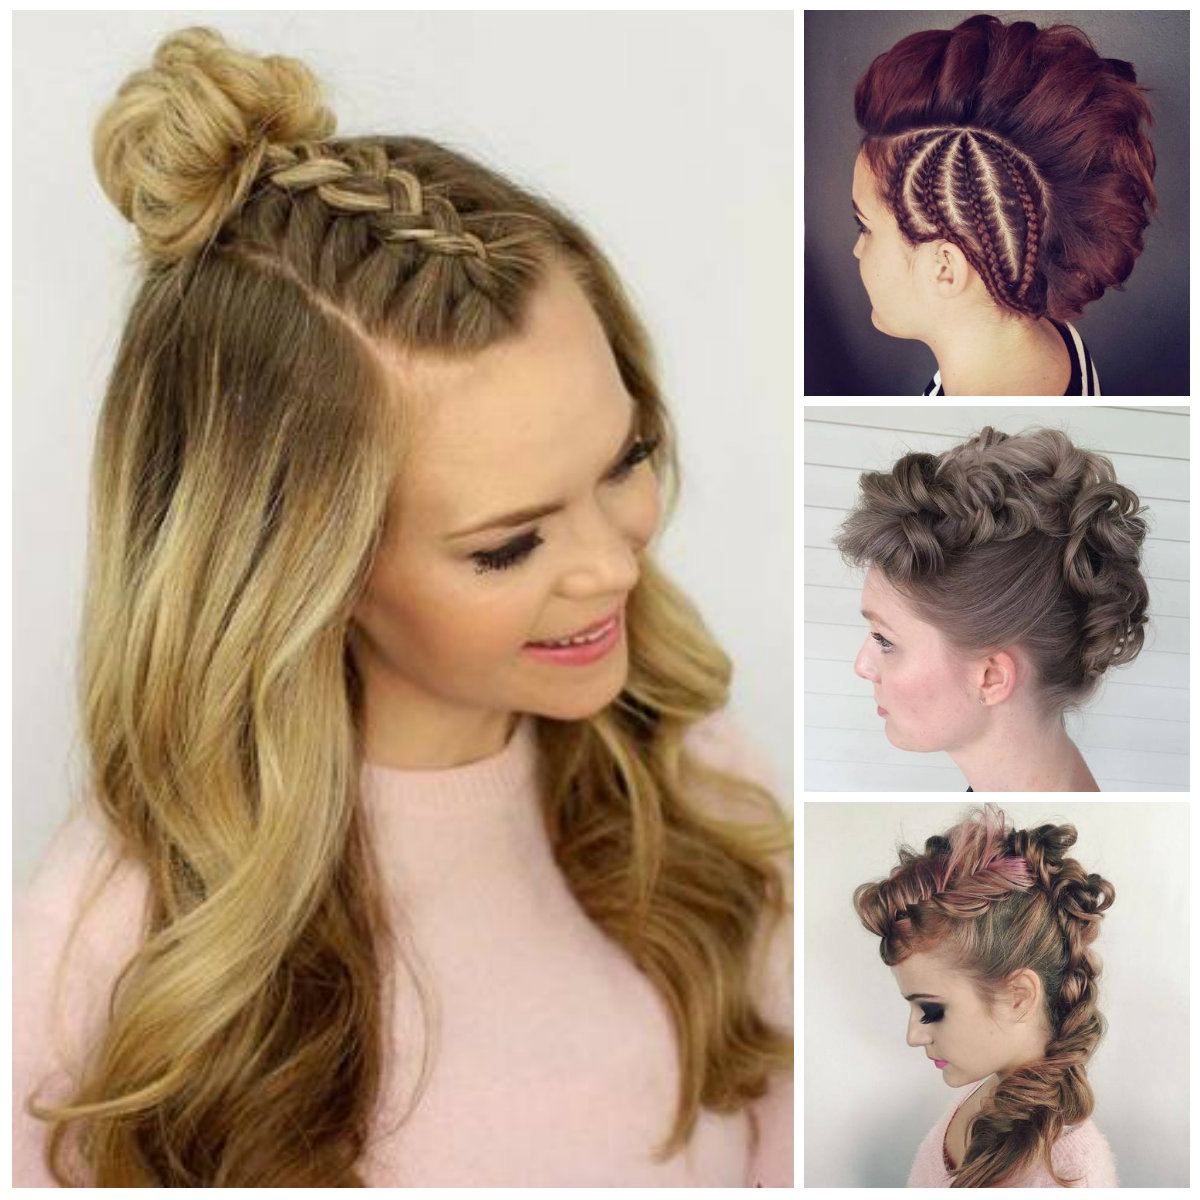 Most Popular Full Braided Mohawk Hairstyles With Regard To Braided Mohawk Hairstyles For Females (View 12 of 20)